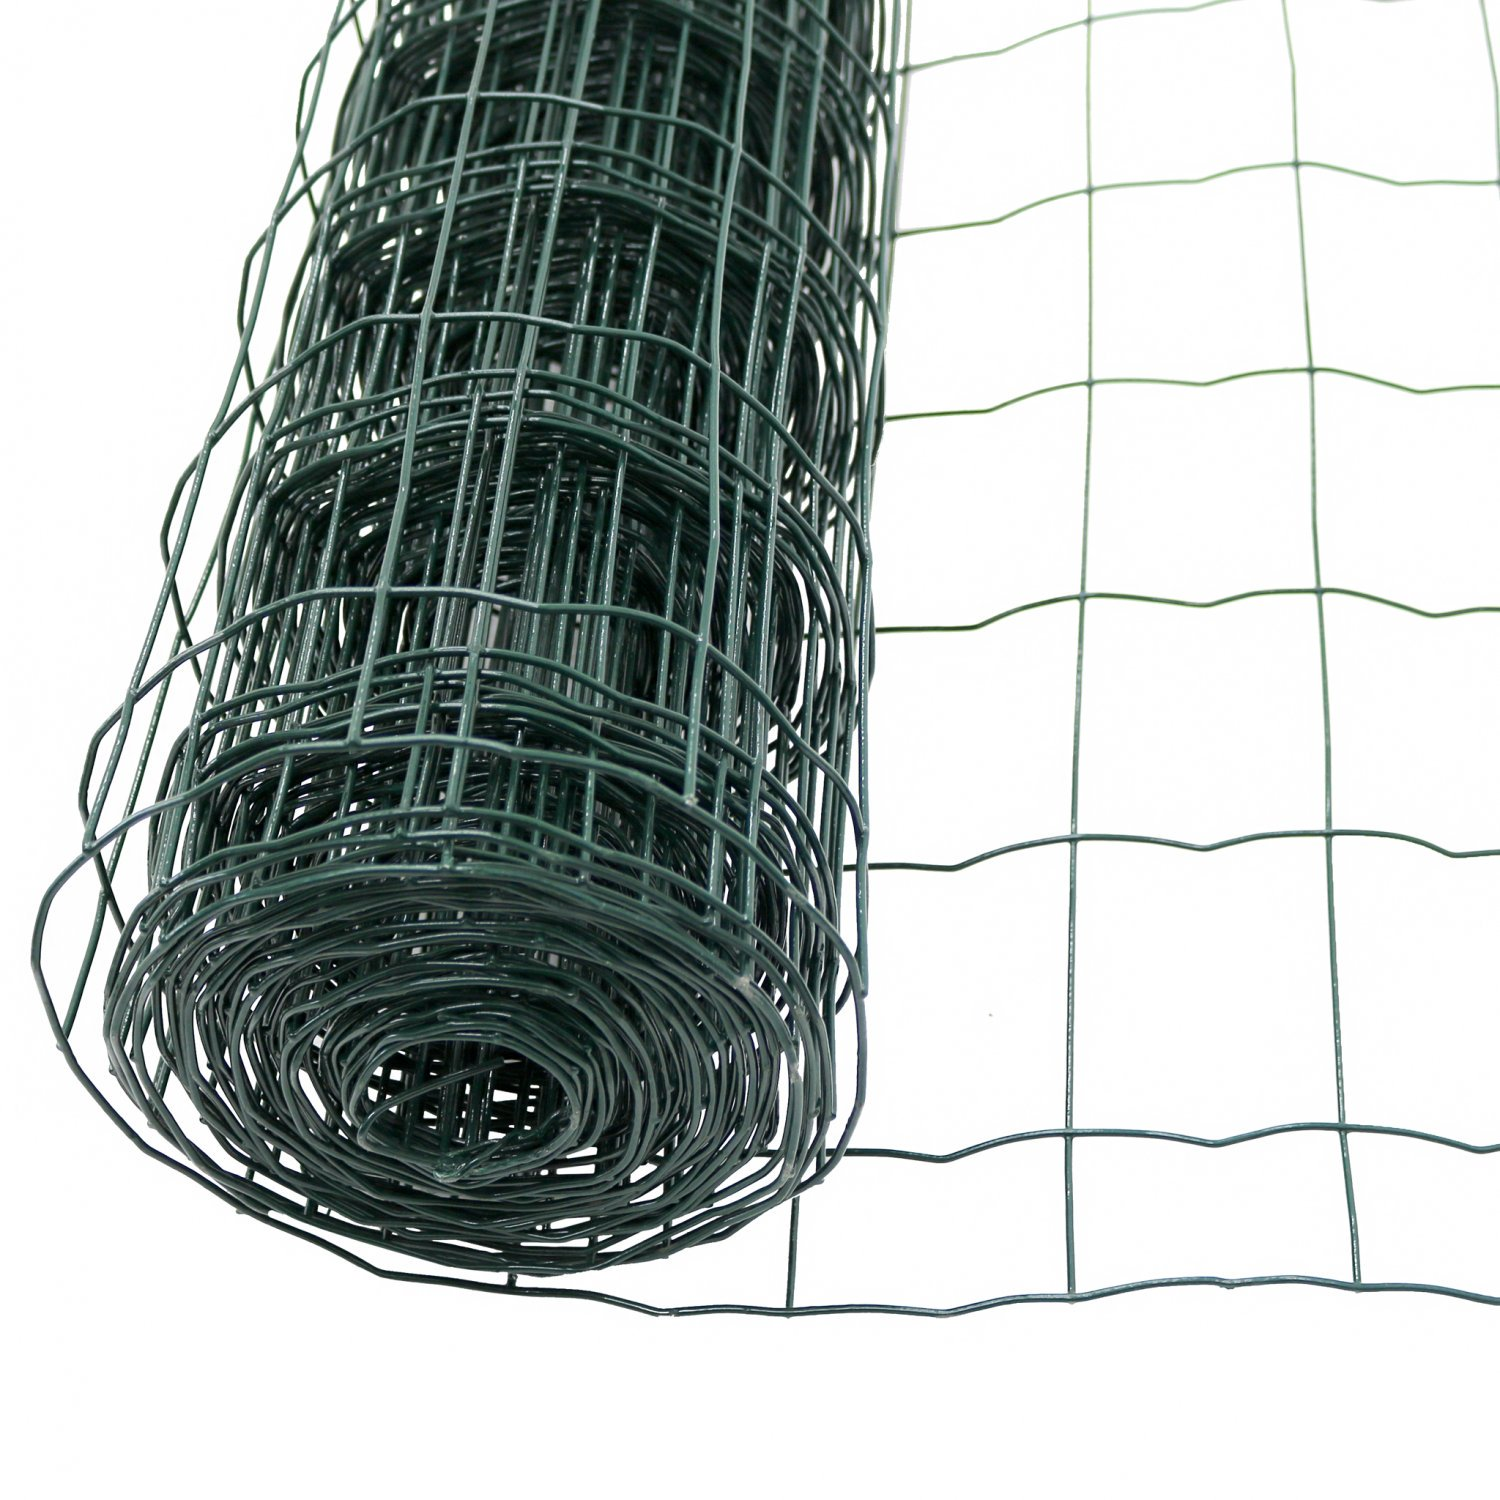 1.2m x 10m Green PVC Coated Galvanised Steel Wire Mesh Fencing